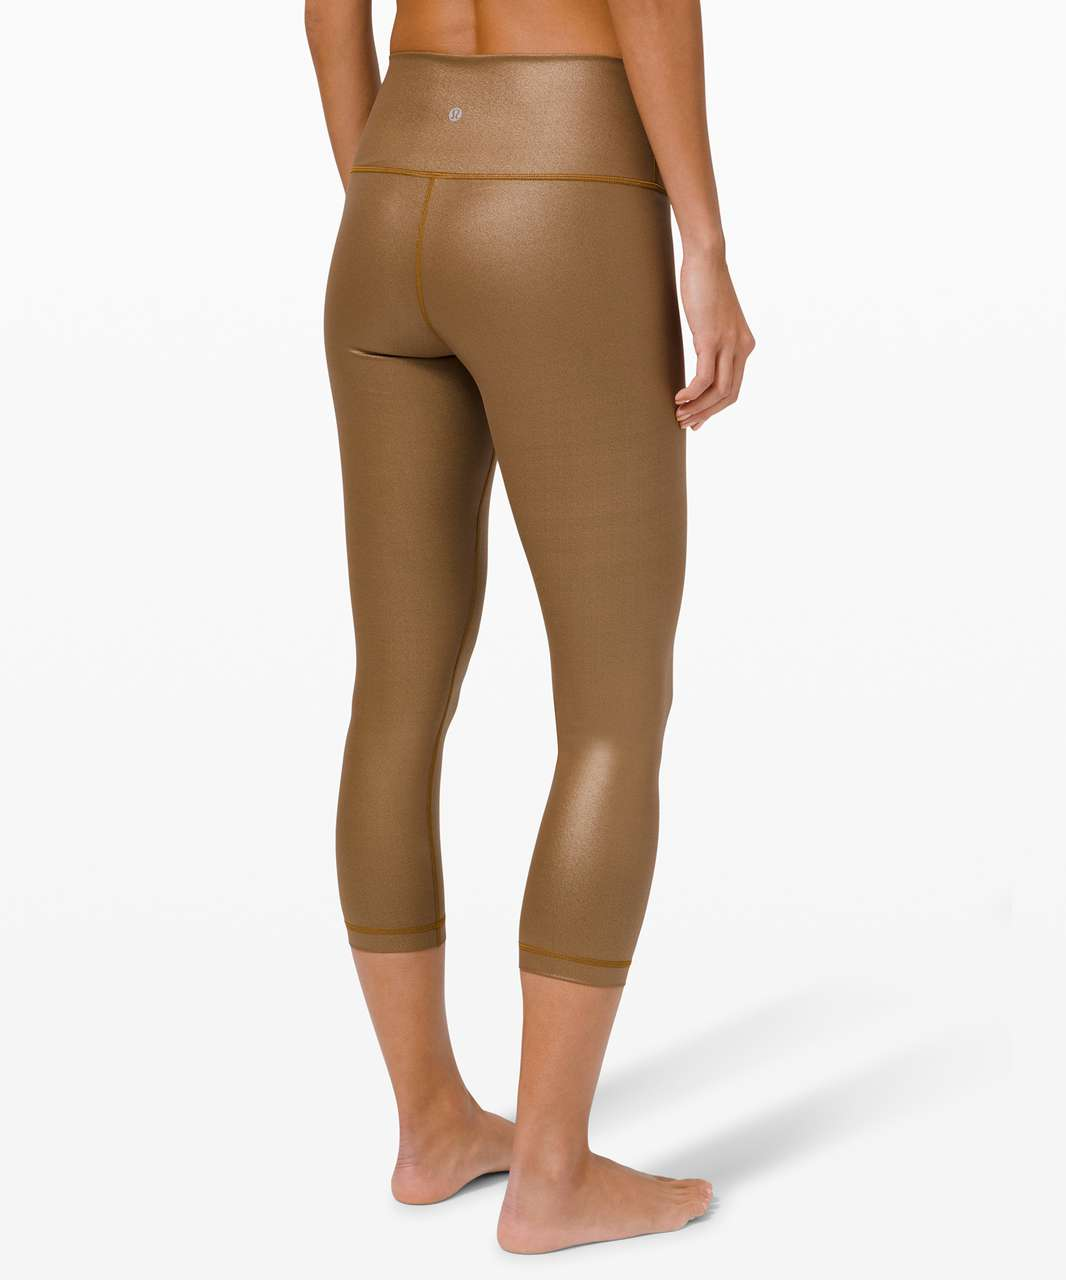 "Lululemon Wunder Under High-Rise Crop 23"" Foil *Full-On Luxtreme - Matte Copper Foil"